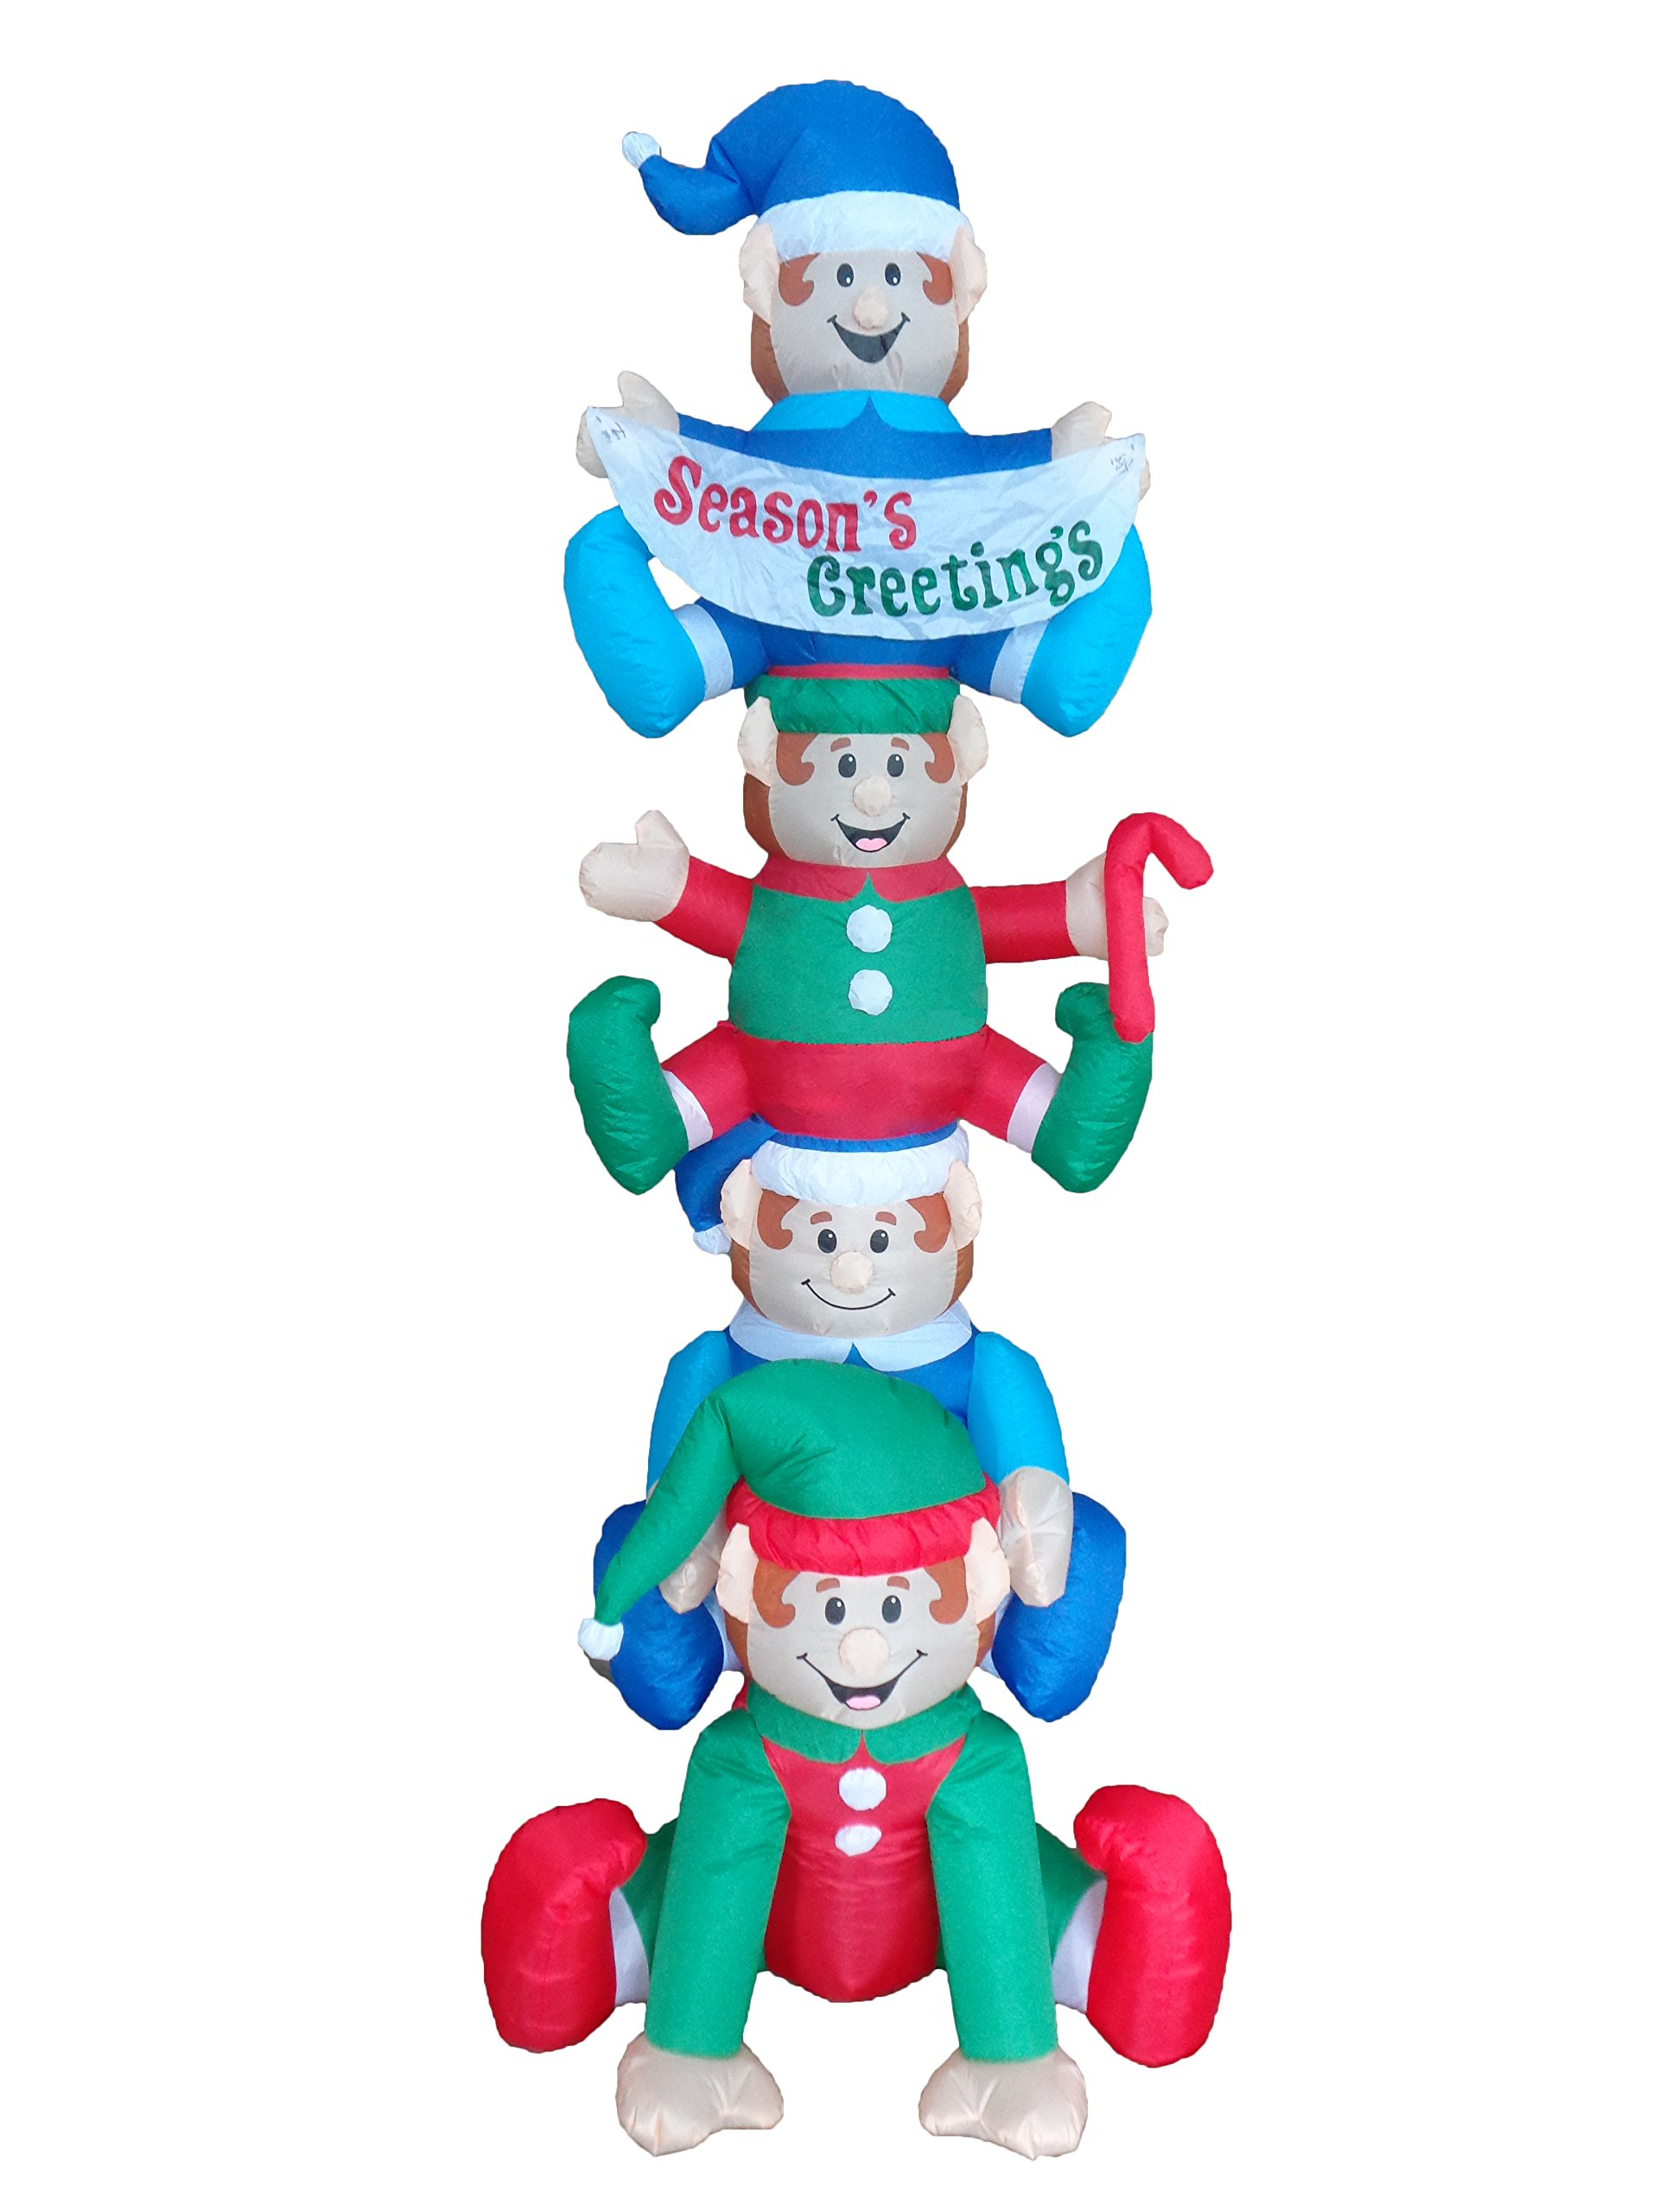 BZB Goods 8 Foot Tall Christmas Inflatable Stacking Elves with Lights Outdoor Indoor Holiday Decorations, Blow Up LED Lighted Christmas Yard Decor, Giant Lawn Inflatable for Home Family Outside